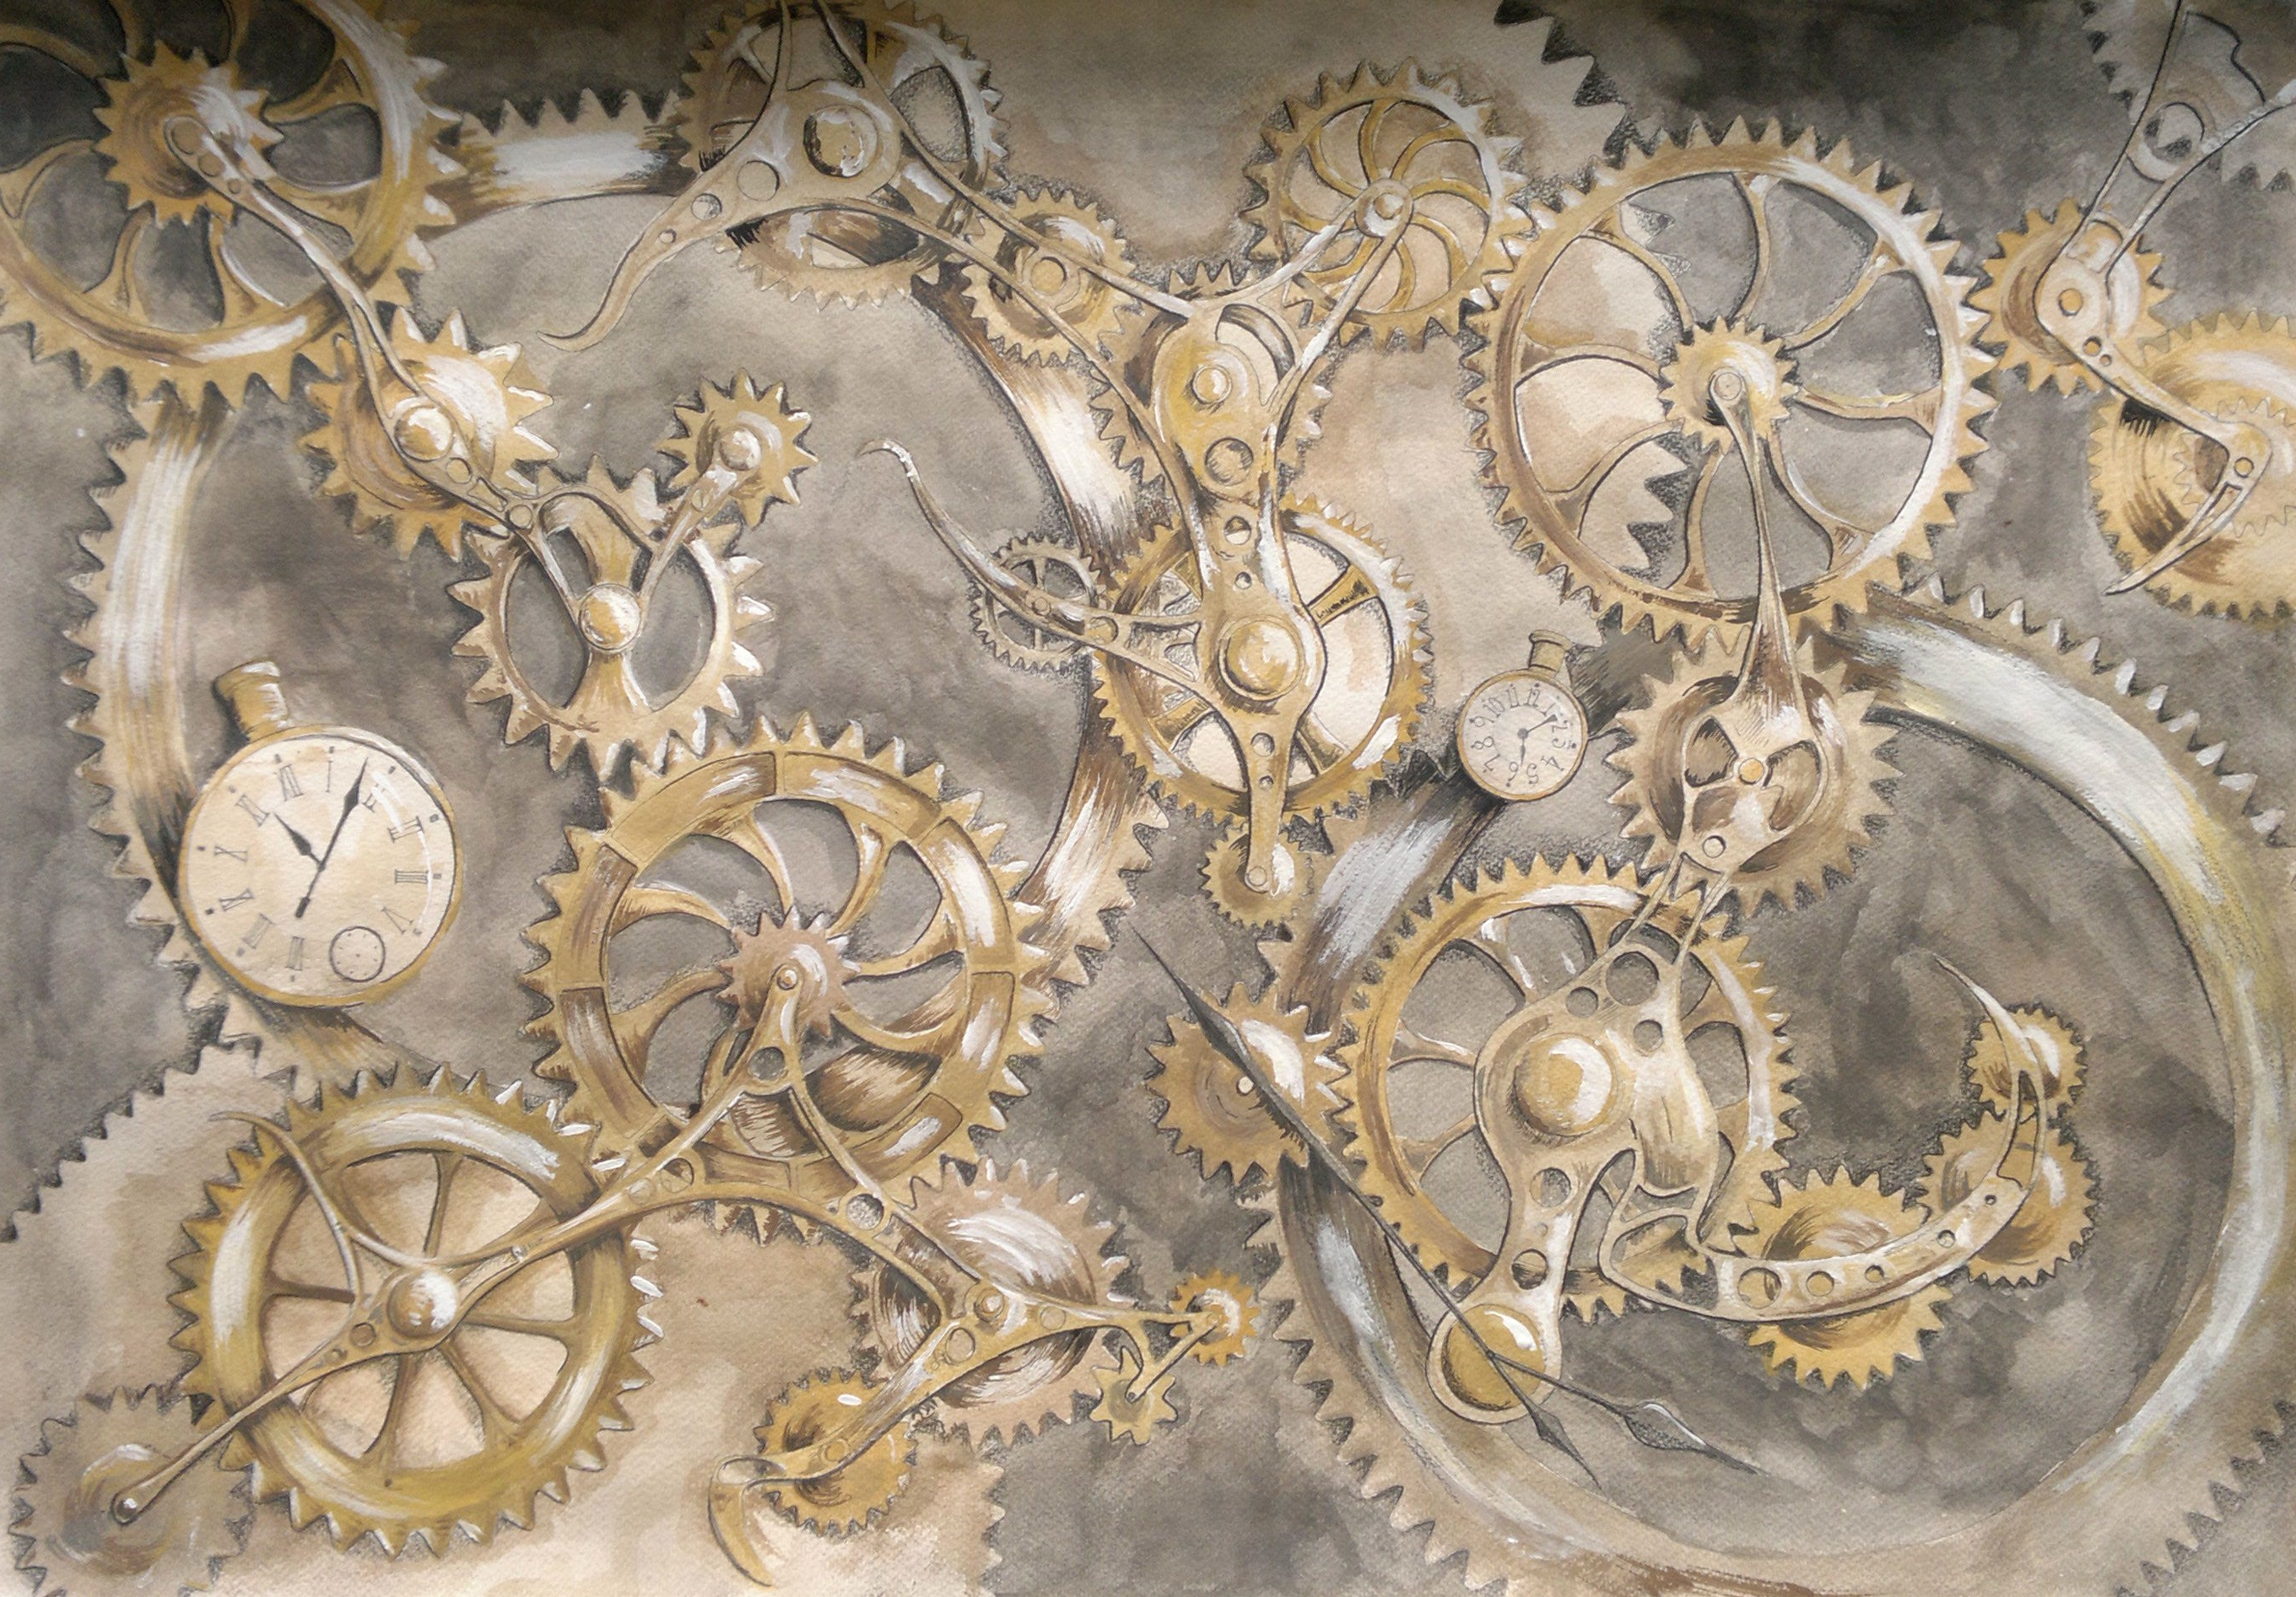 Cogs and Cogs